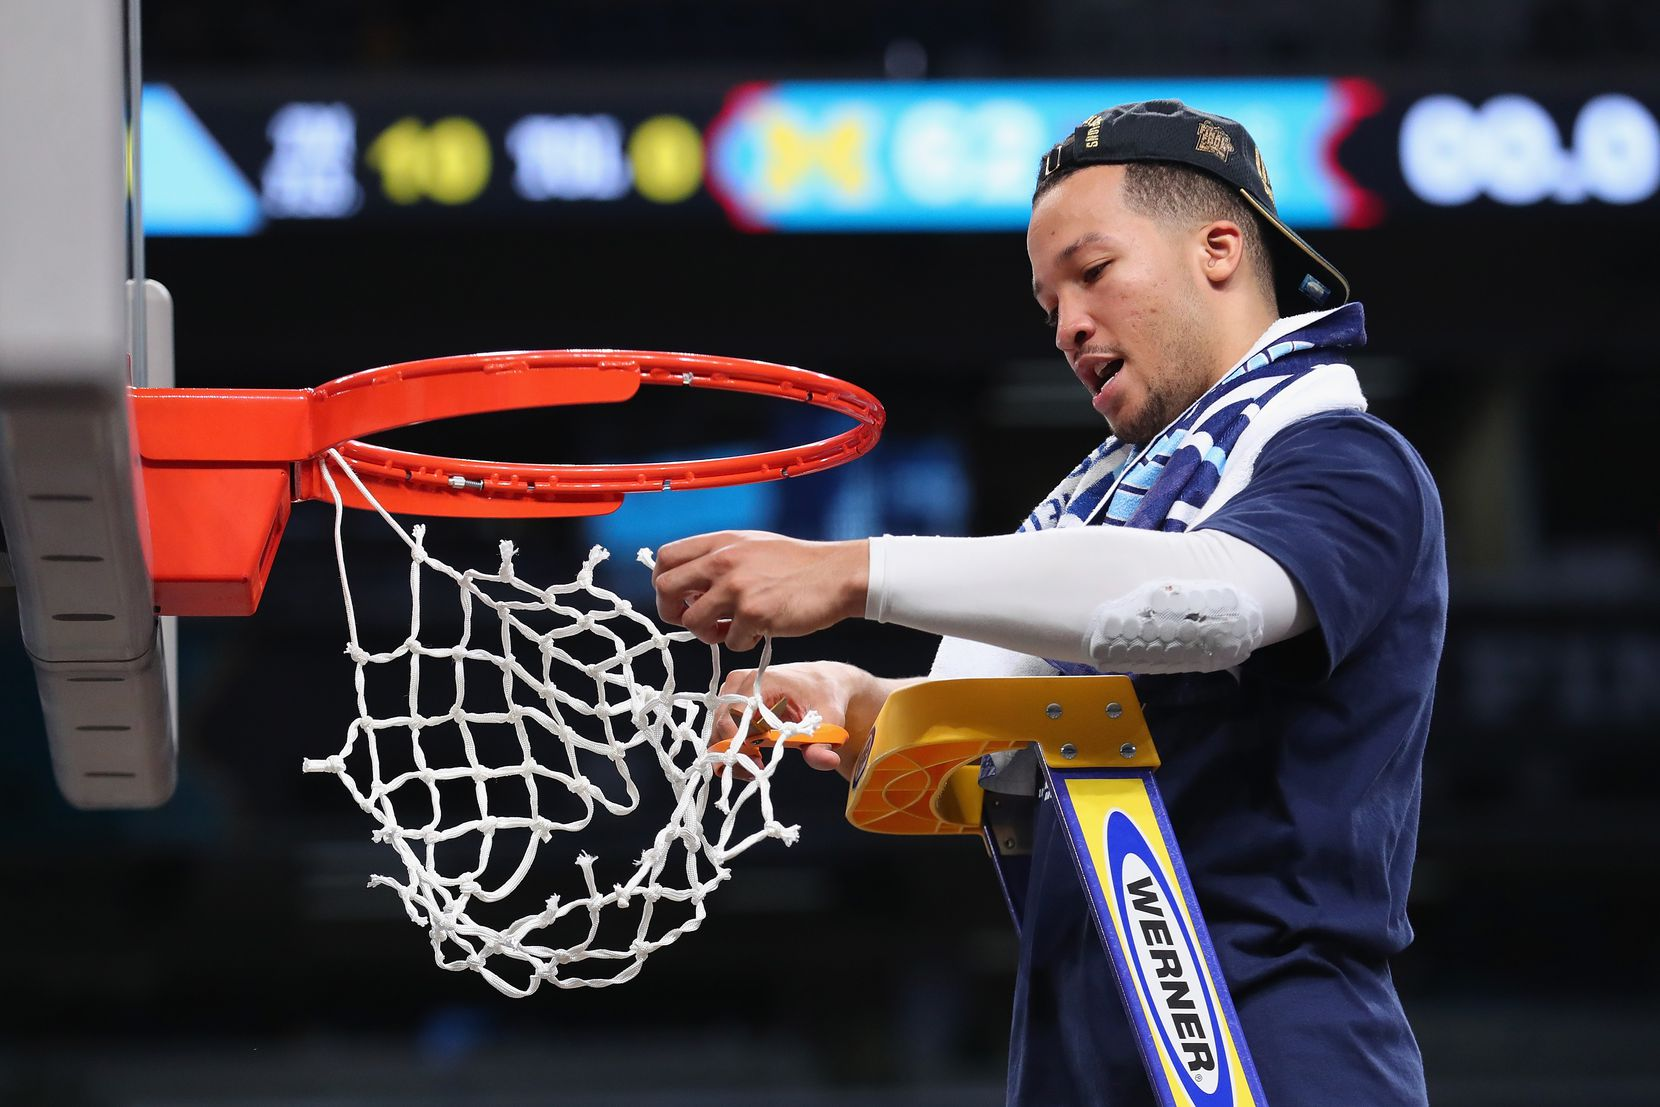 SAN ANTONIO, TX - APRIL 02:  Jalen Brunson #1 of the Villanova Wildcats cuts down the net after defeating the Michigan Wolverines during the 2018 NCAA Men's Final Four National Championship game at the Alamodome on April 2, 2018 in San Antonio, Texas.  Villanova defeated Michigan 79-62.  (Photo by Tom Pennington/Getty Images)